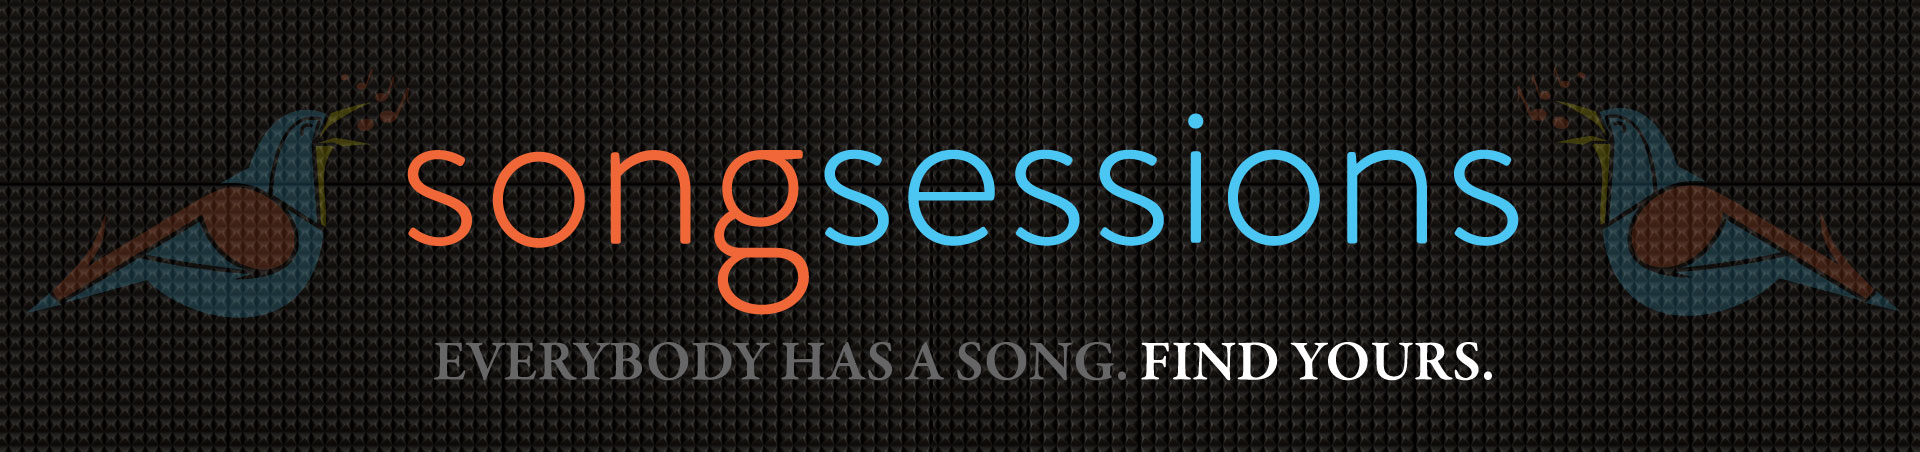 Song Sessions Everybody Has A Song. Find Yours.